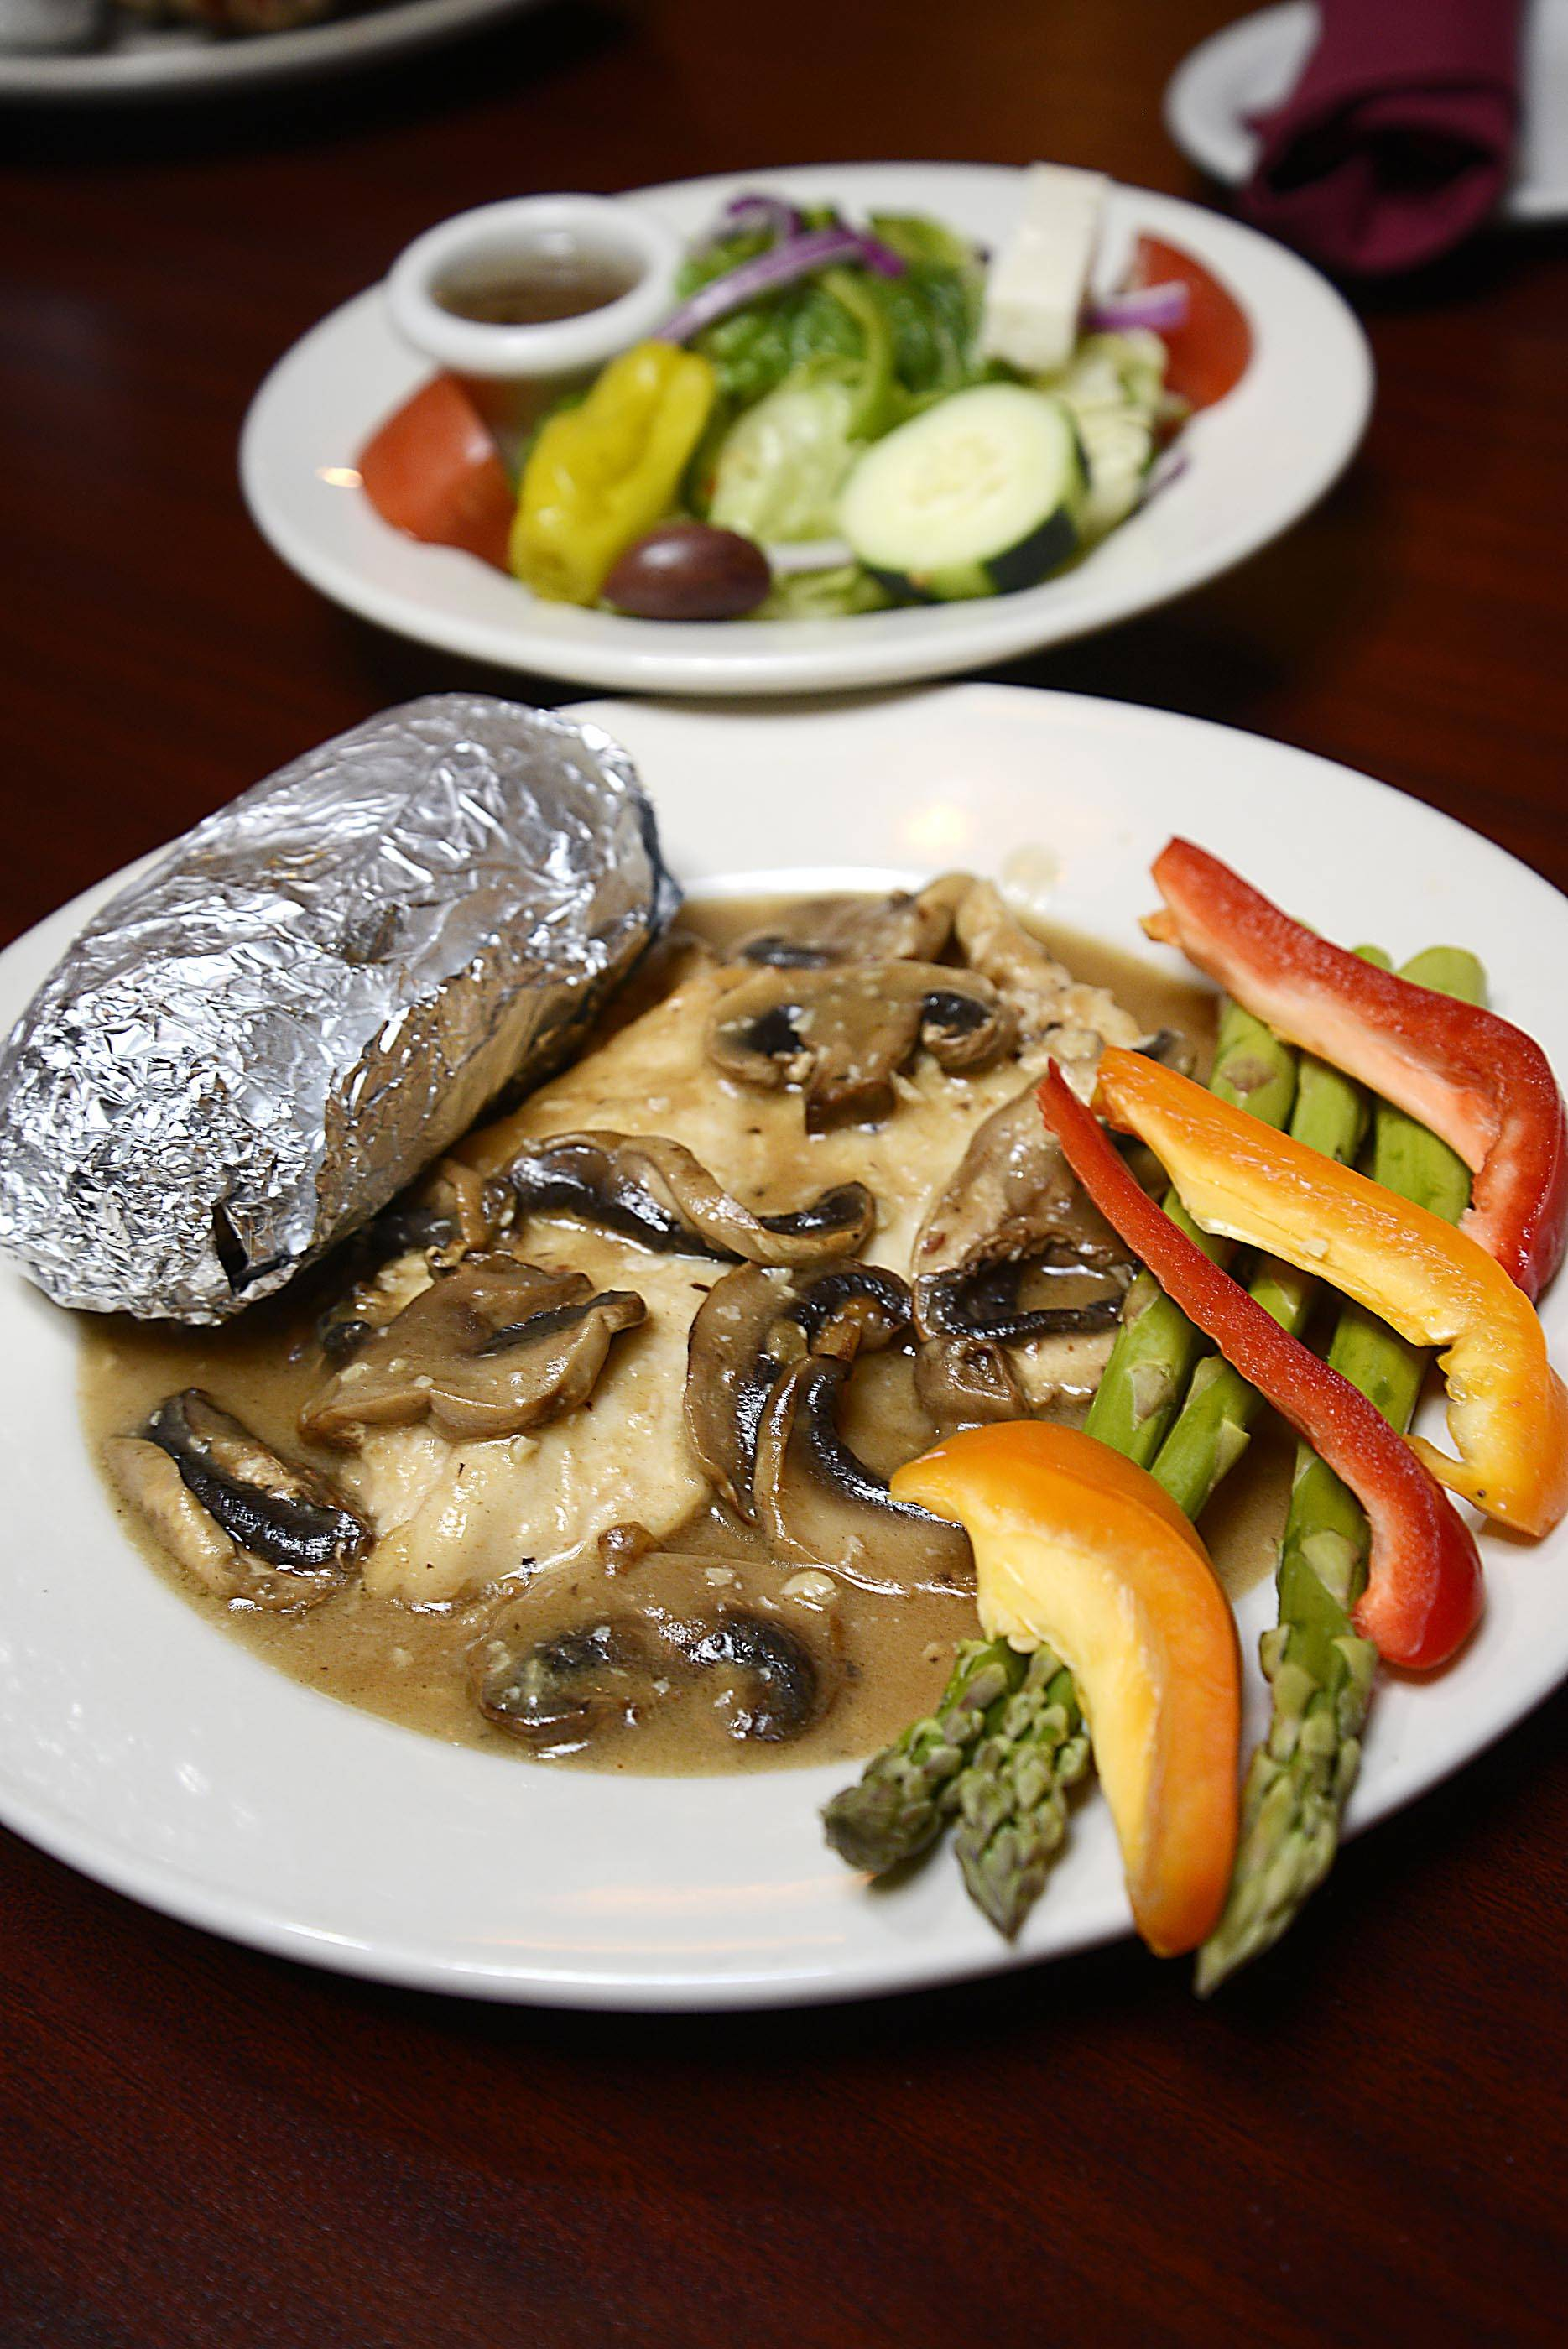 Chicken Breast Picante, sautéed with white wine and mushrooms, comes with a Greek salad at North Avenue Charhouse in St. Charles.